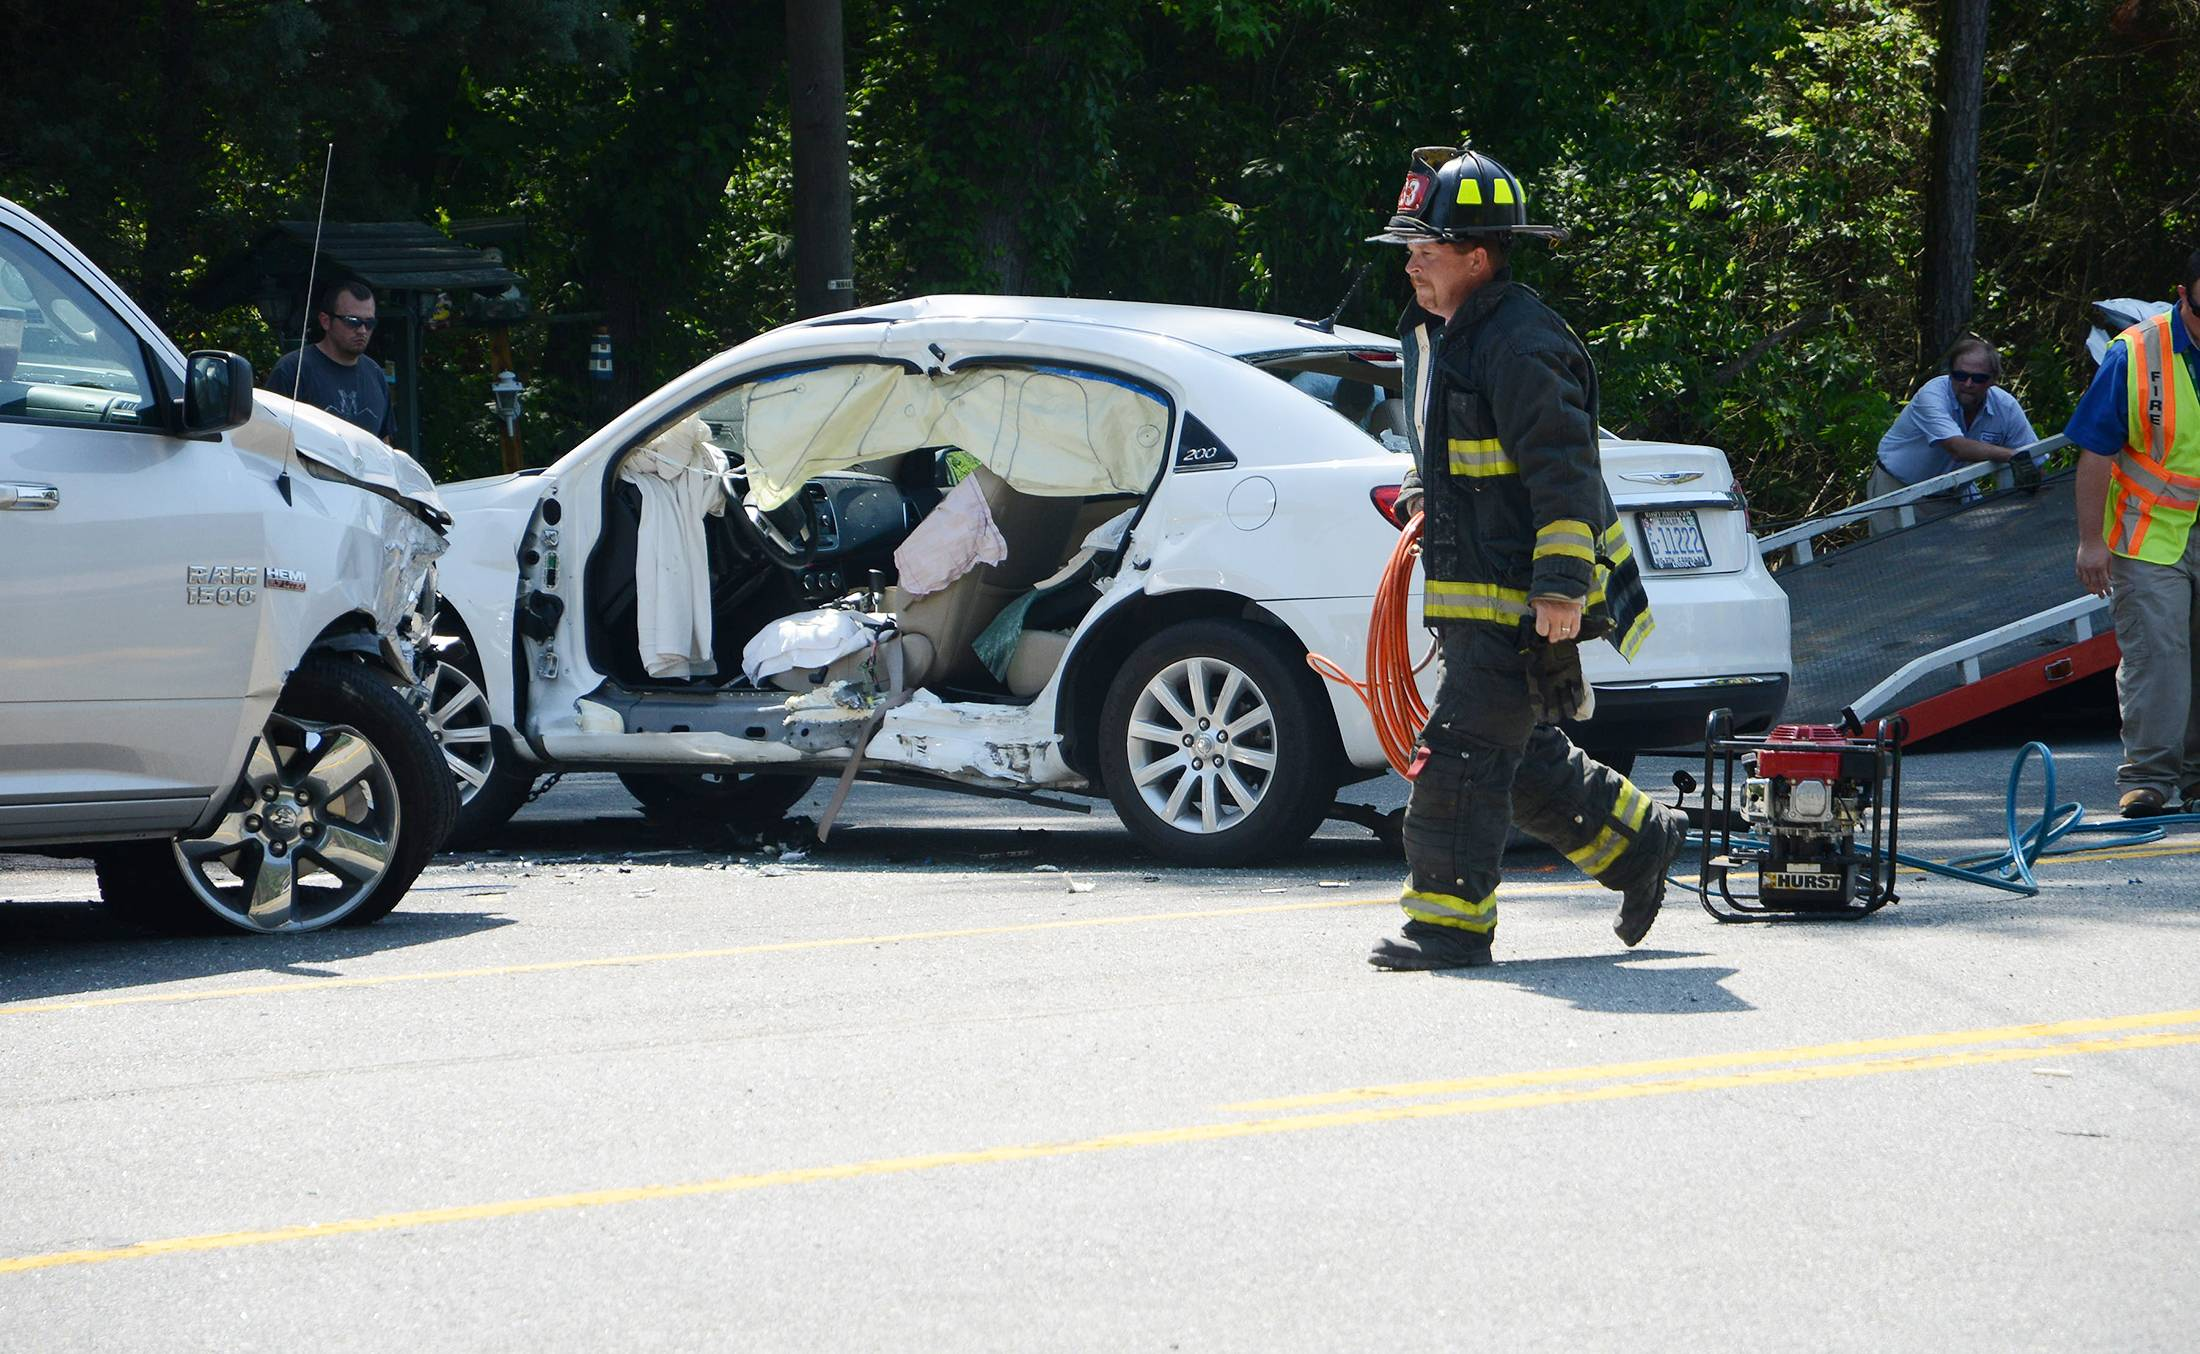 A North Lenoir, N.C. firefighter takes equipment back to the truck after a woman, pinned in her white vehicle, was rescued by the jaws of life, in Kinston, N.C., earlier this month. The economic and societal harm from motor vehicle crashes amounted to a whopping $871 billion in a single year, according to a study released Thursday by the National Highway Traffic Safety Administration.